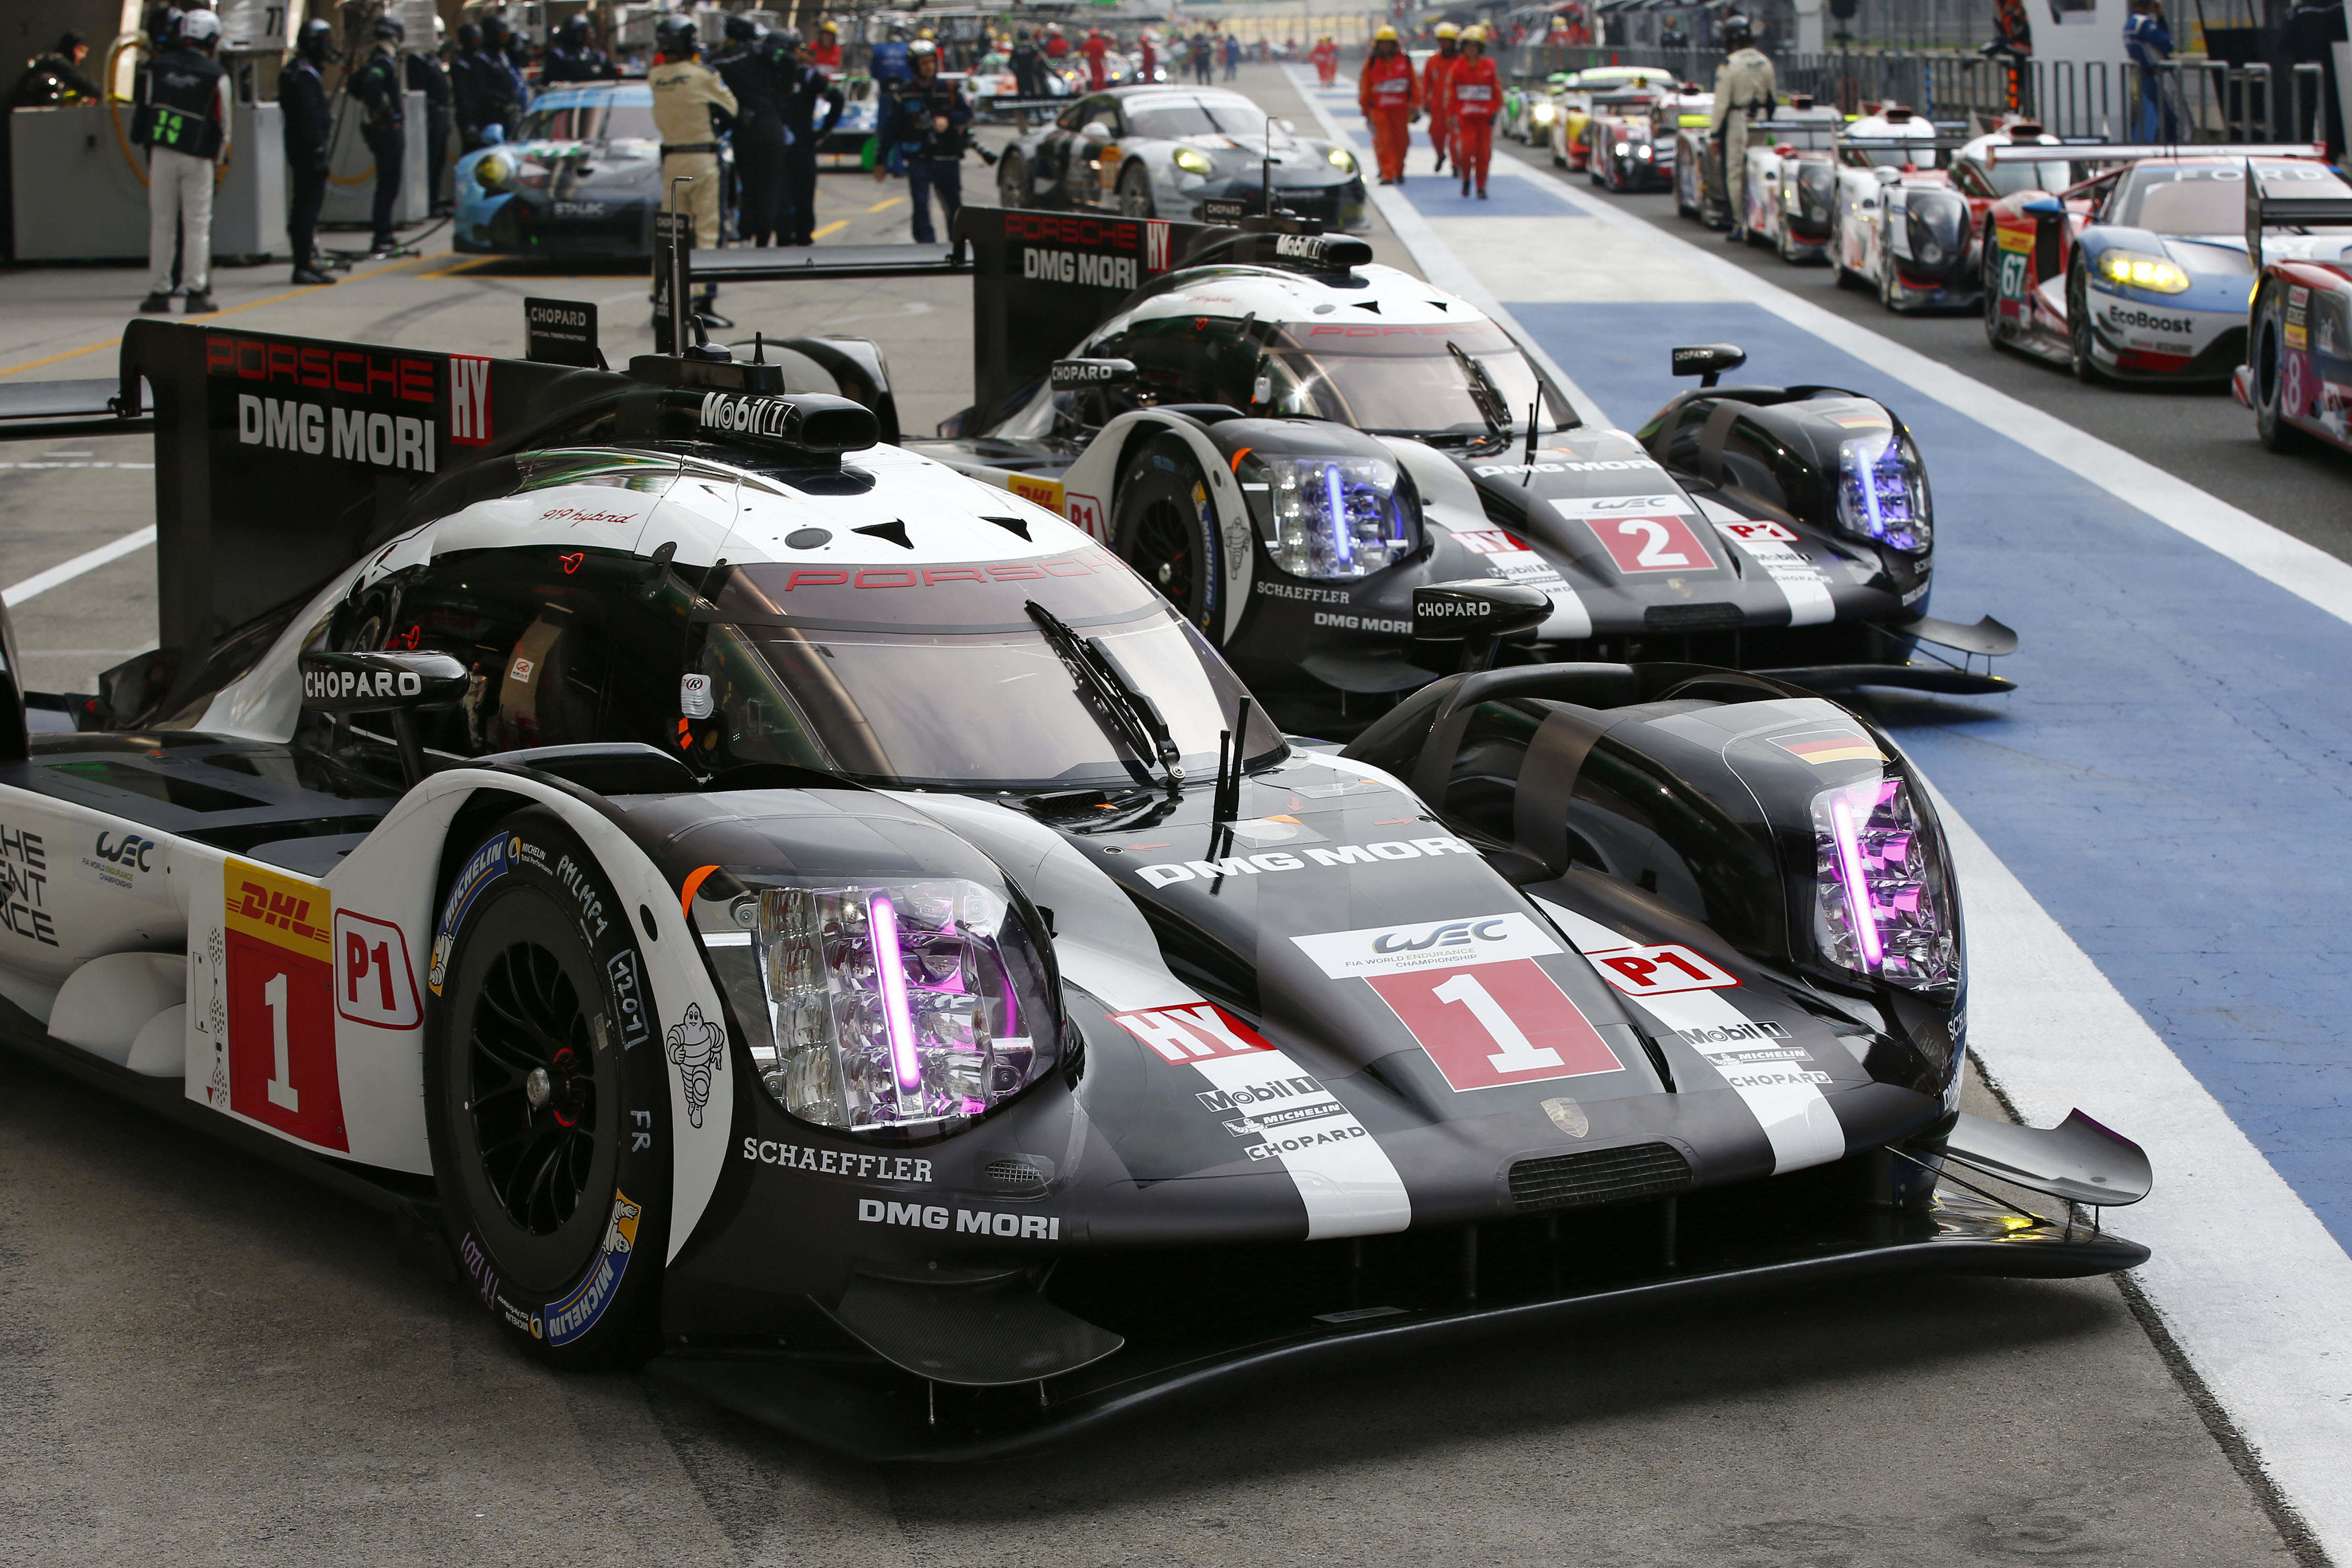 The Porsche Team With Two 919 Hybrids Generally Had A Positive First Day Of Practice For Penultimate Round Fia World Endurance Championship In